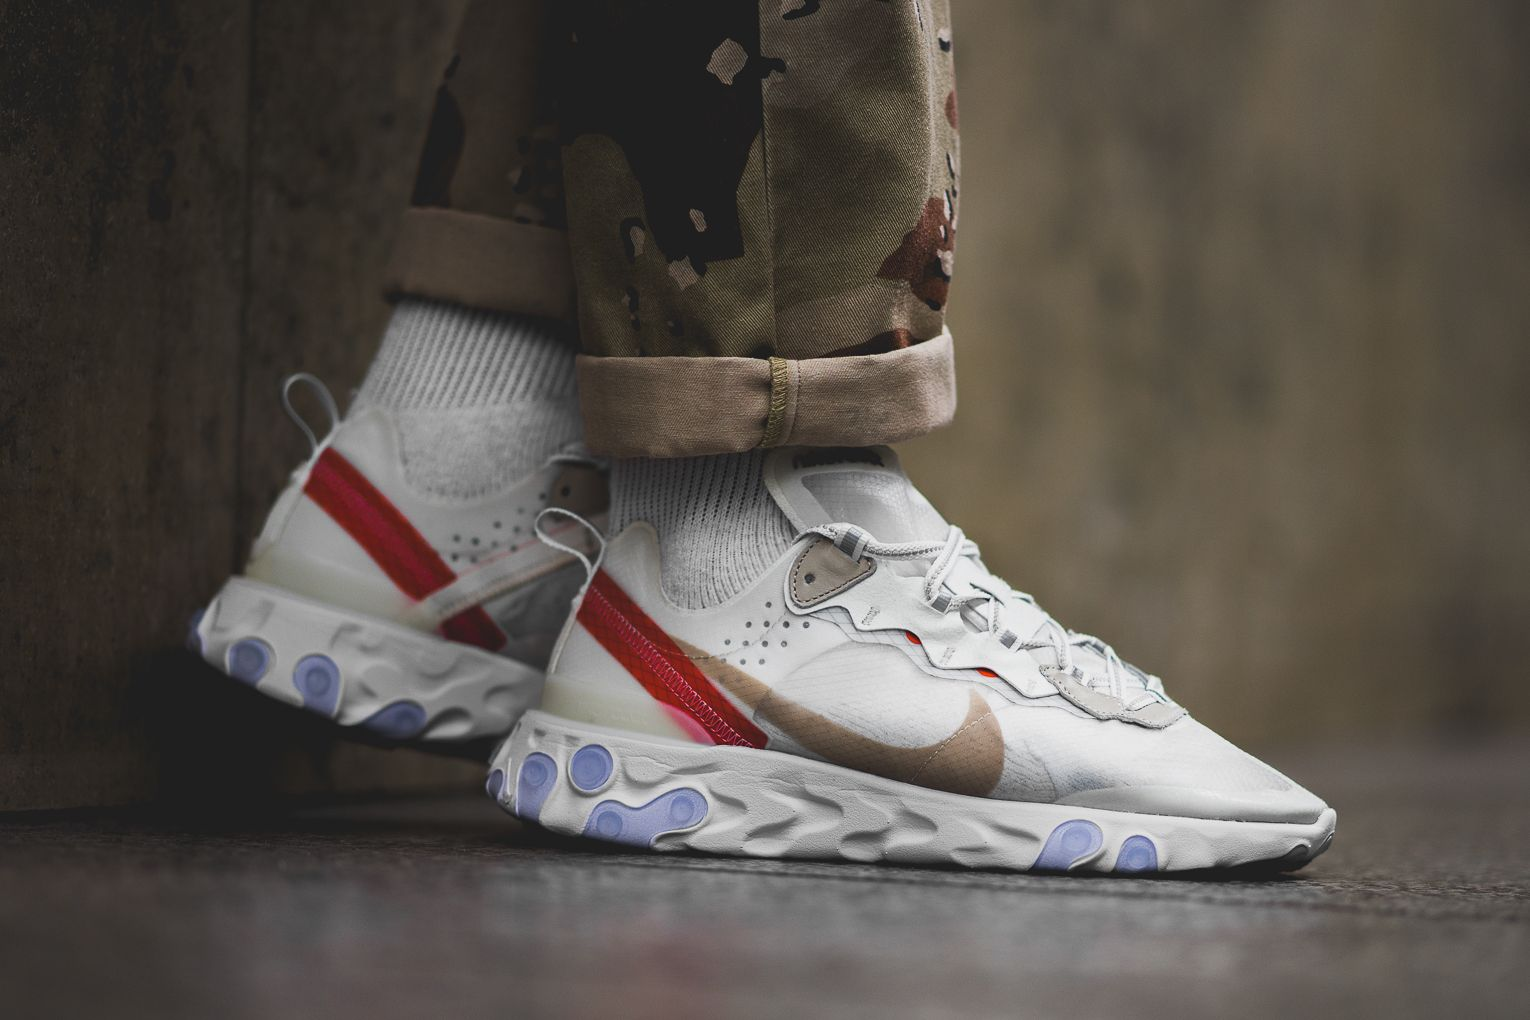 Nike React Element 87 Sail - AQ1090-100 | Nike boys & renzie | Best ...